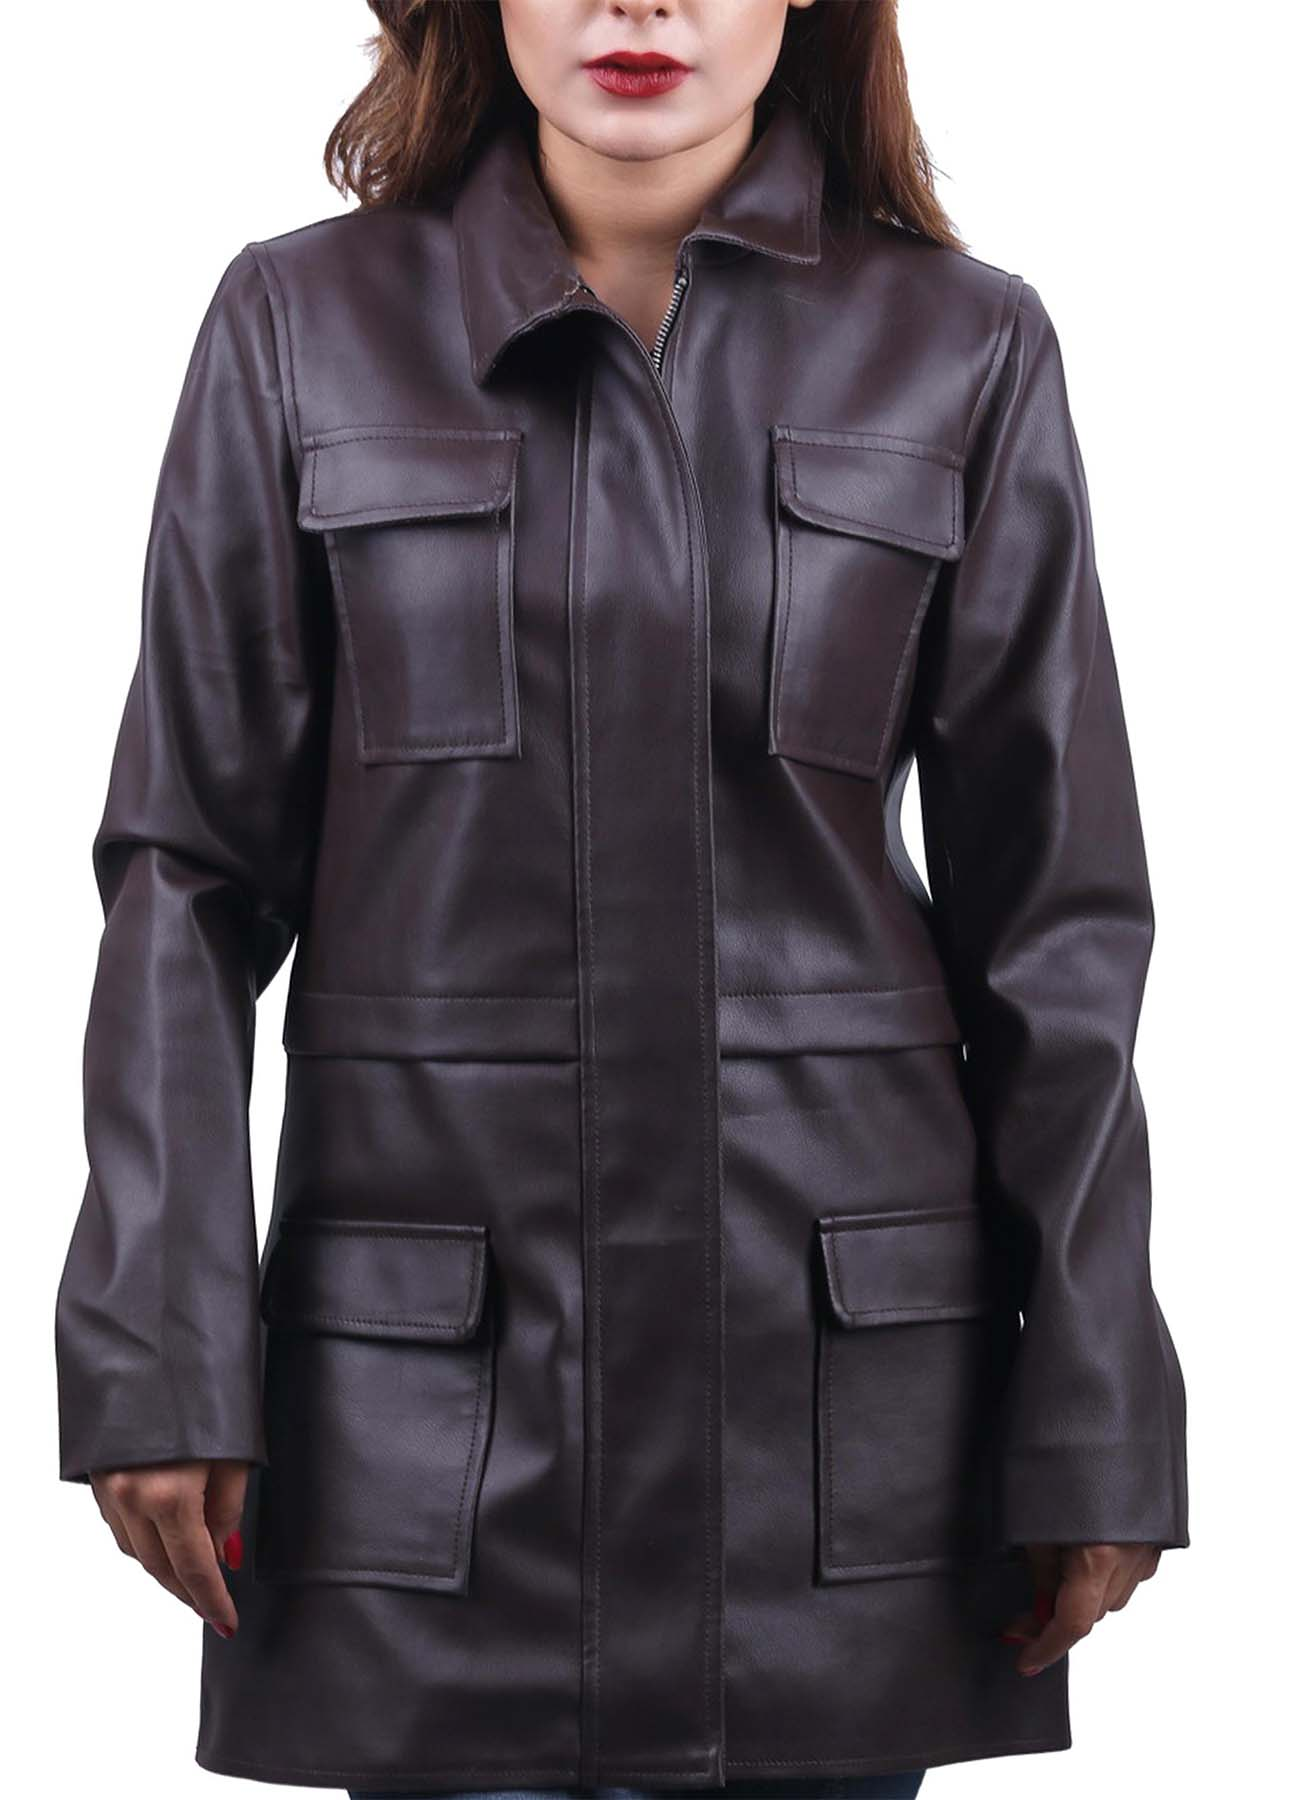 Chocolate Brown Flap Pockets Long Leather Coat For Women